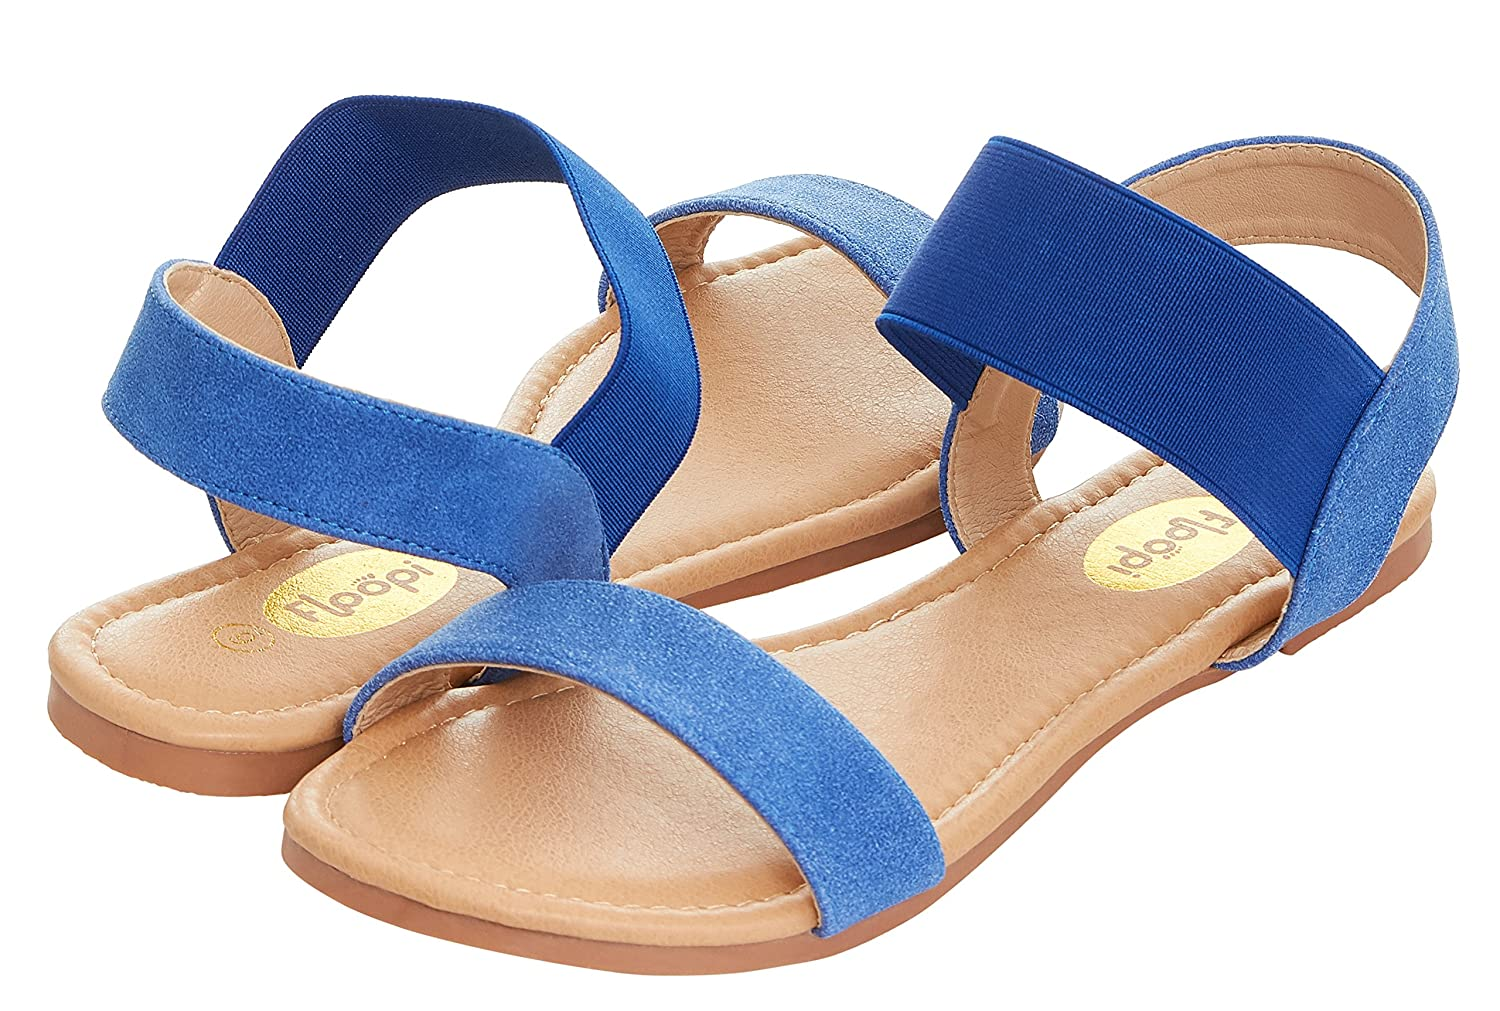 716fef21c7 Floopi presents you with the stylish flat sandals for women, the only pair  of shoes that you're going to need this summer!